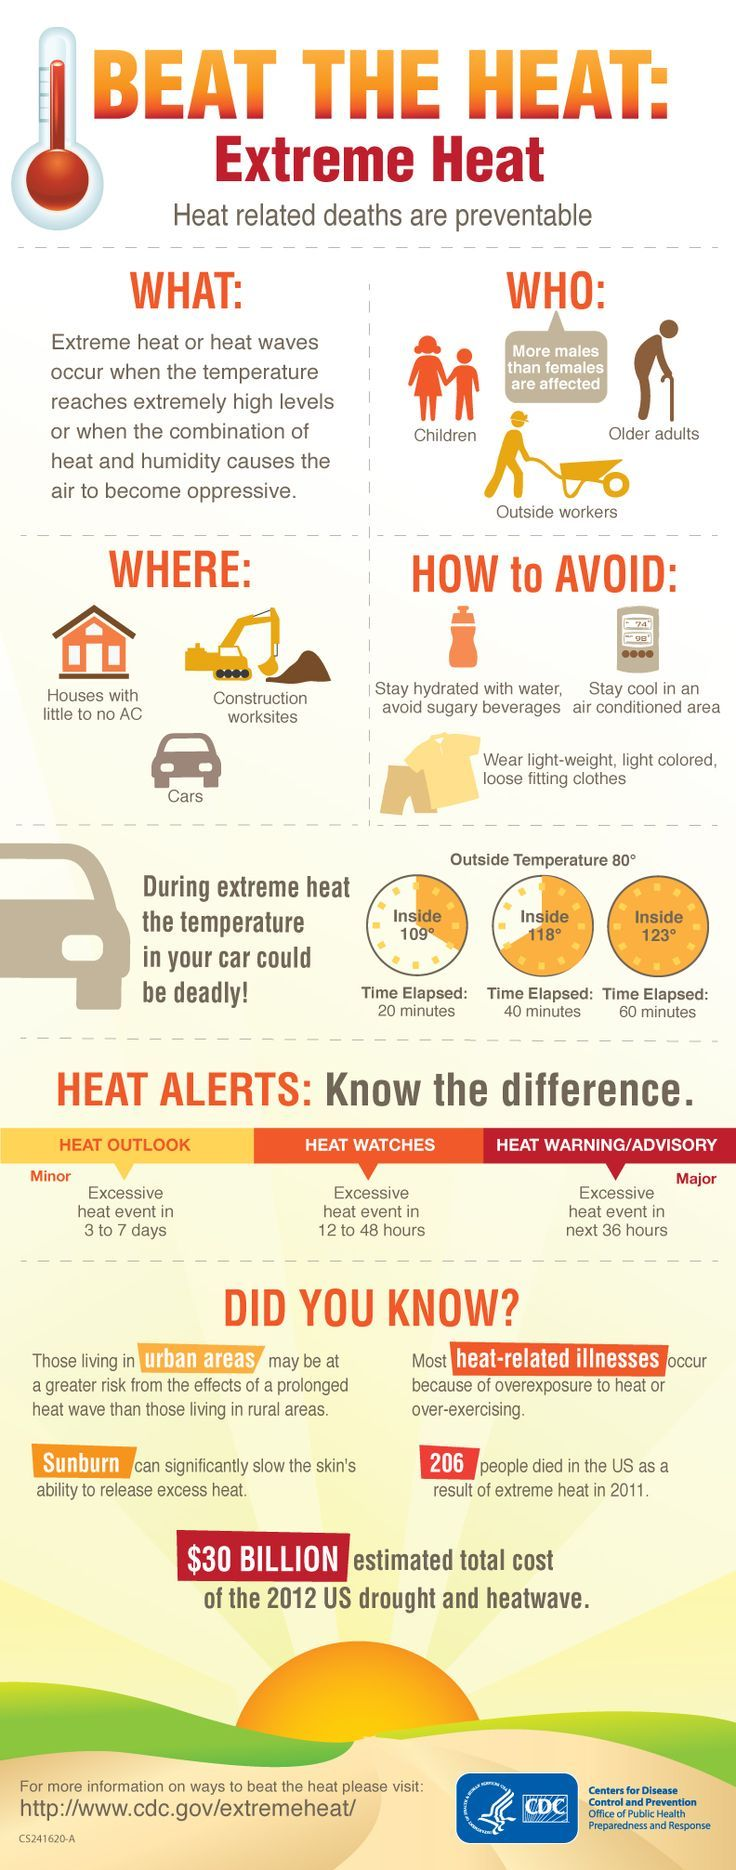 Temperatures are already going up. Learn the facts about